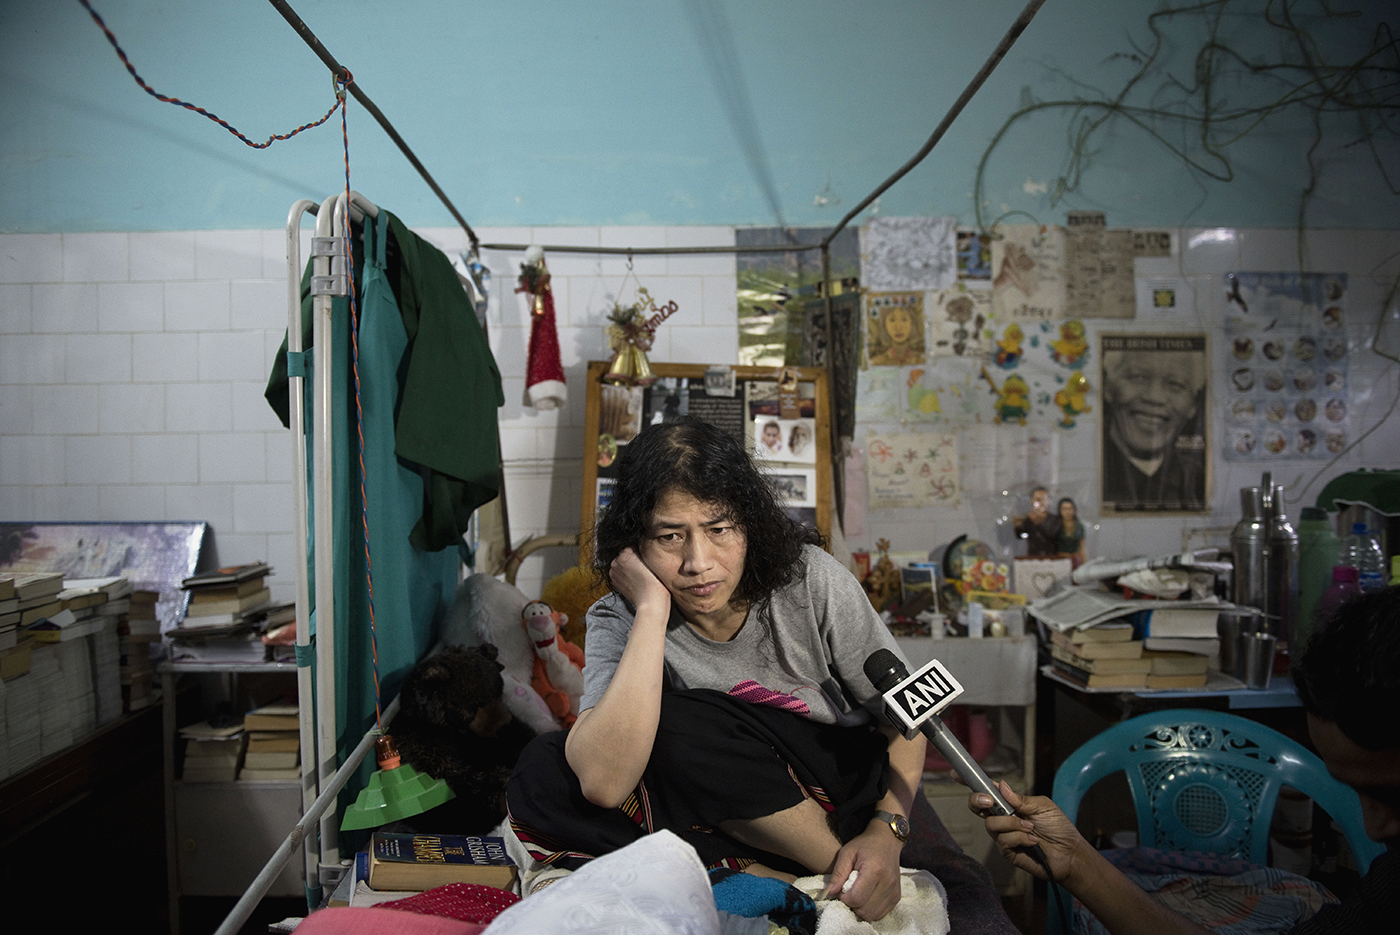 Irom Sharmila - Beyond the Iron Lady of Manipur